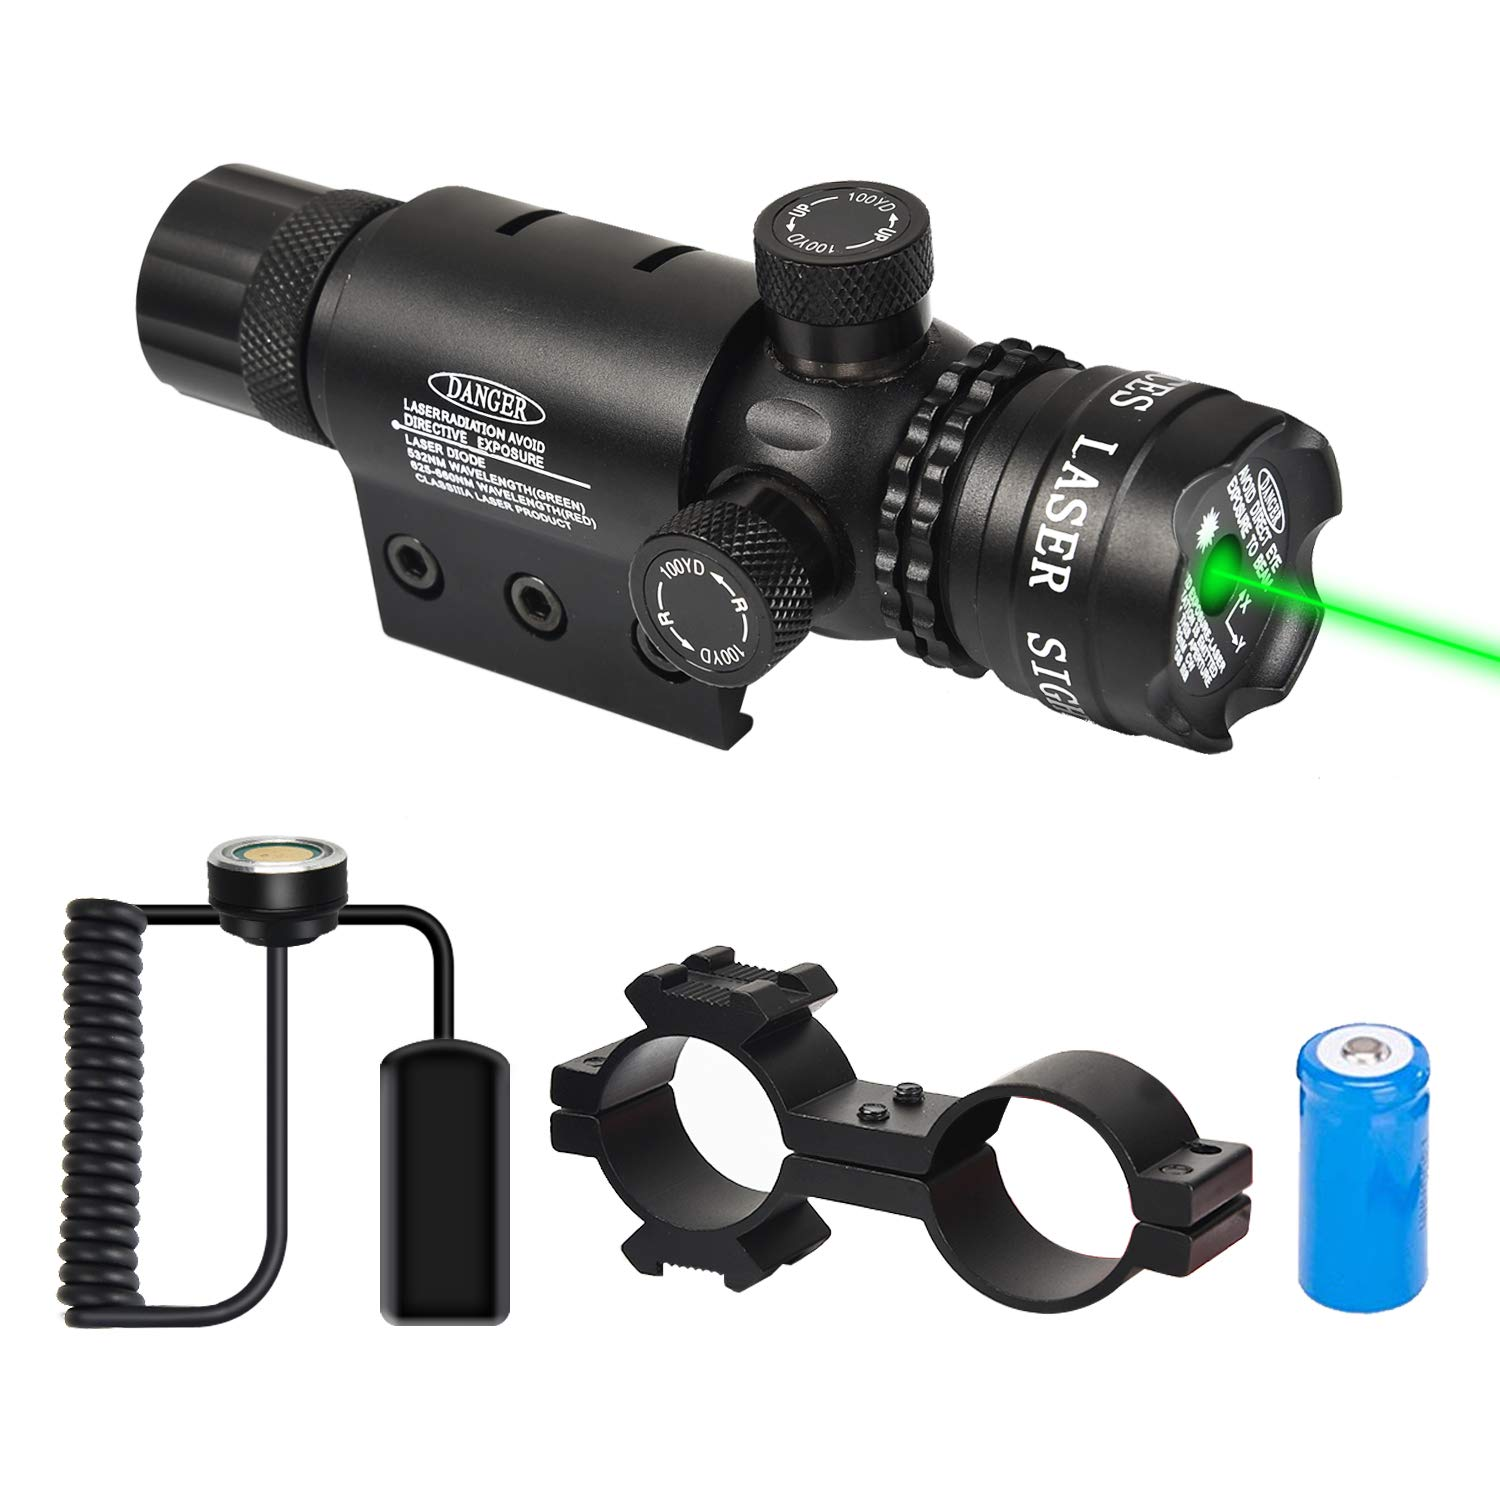 EZshoot Green Laser Sight Green Dot 532nm Rifle Scope with 20mm Picatinny Mount - Include Barrel Mount Cable Switch by EZshoot